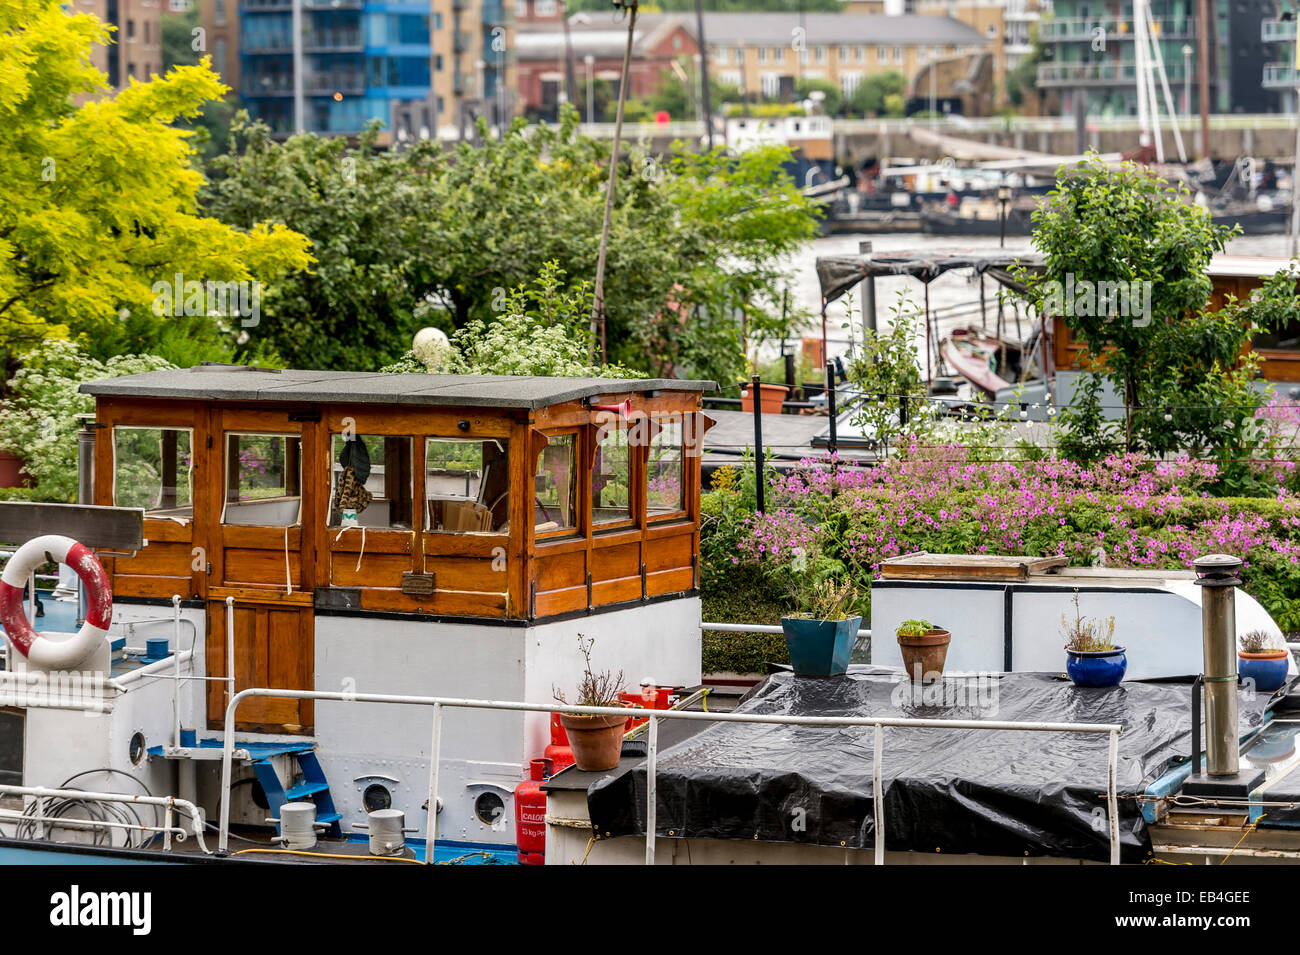 House boats and barges on the River Thames at Shad Thames, with gardens and plants on deck - Stock Image